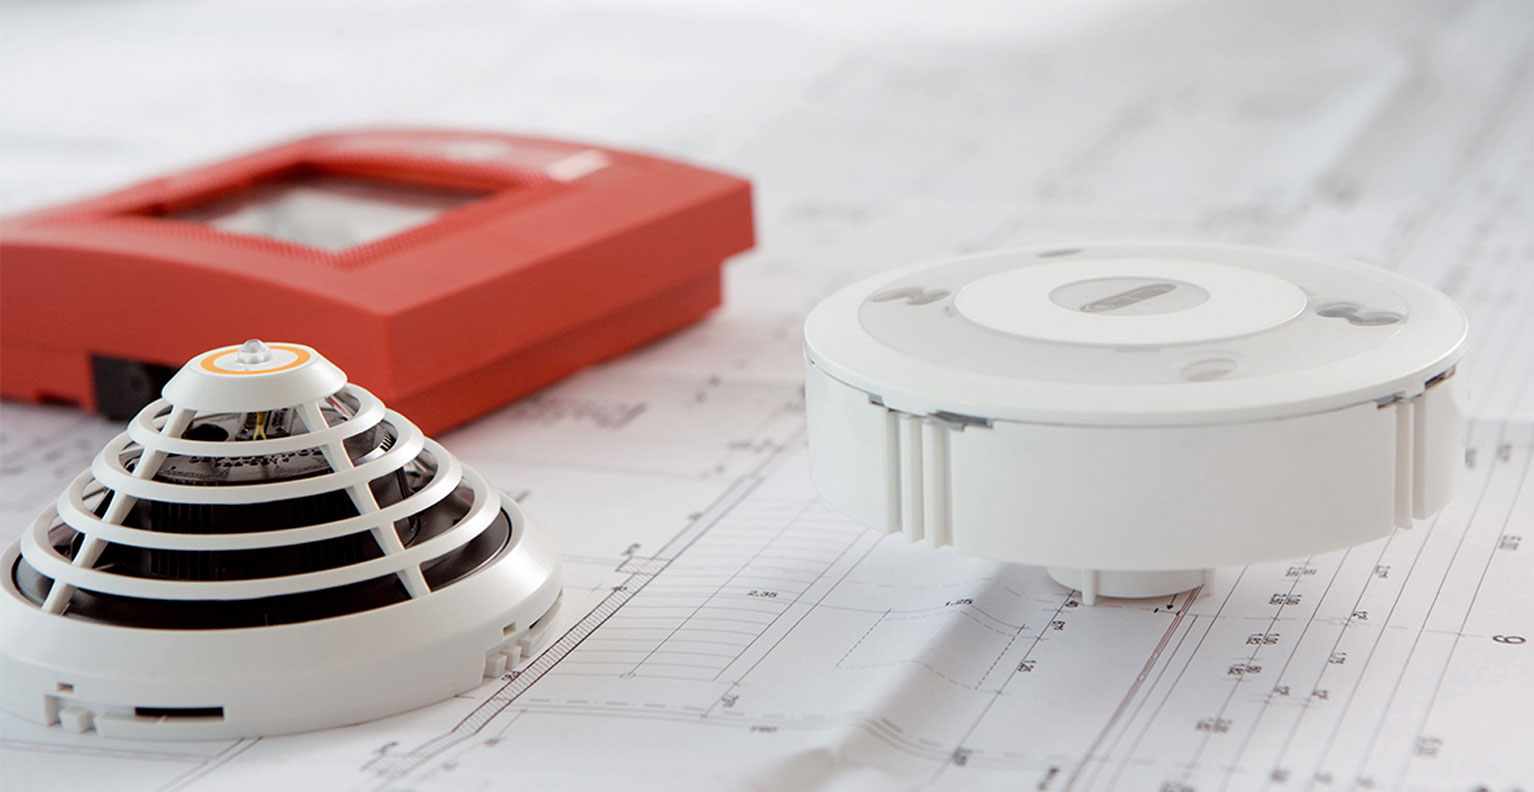 Fire Alarm System In Kolkata, Fire Detection System In Kolkata, Fire Protection Services In Kolkata